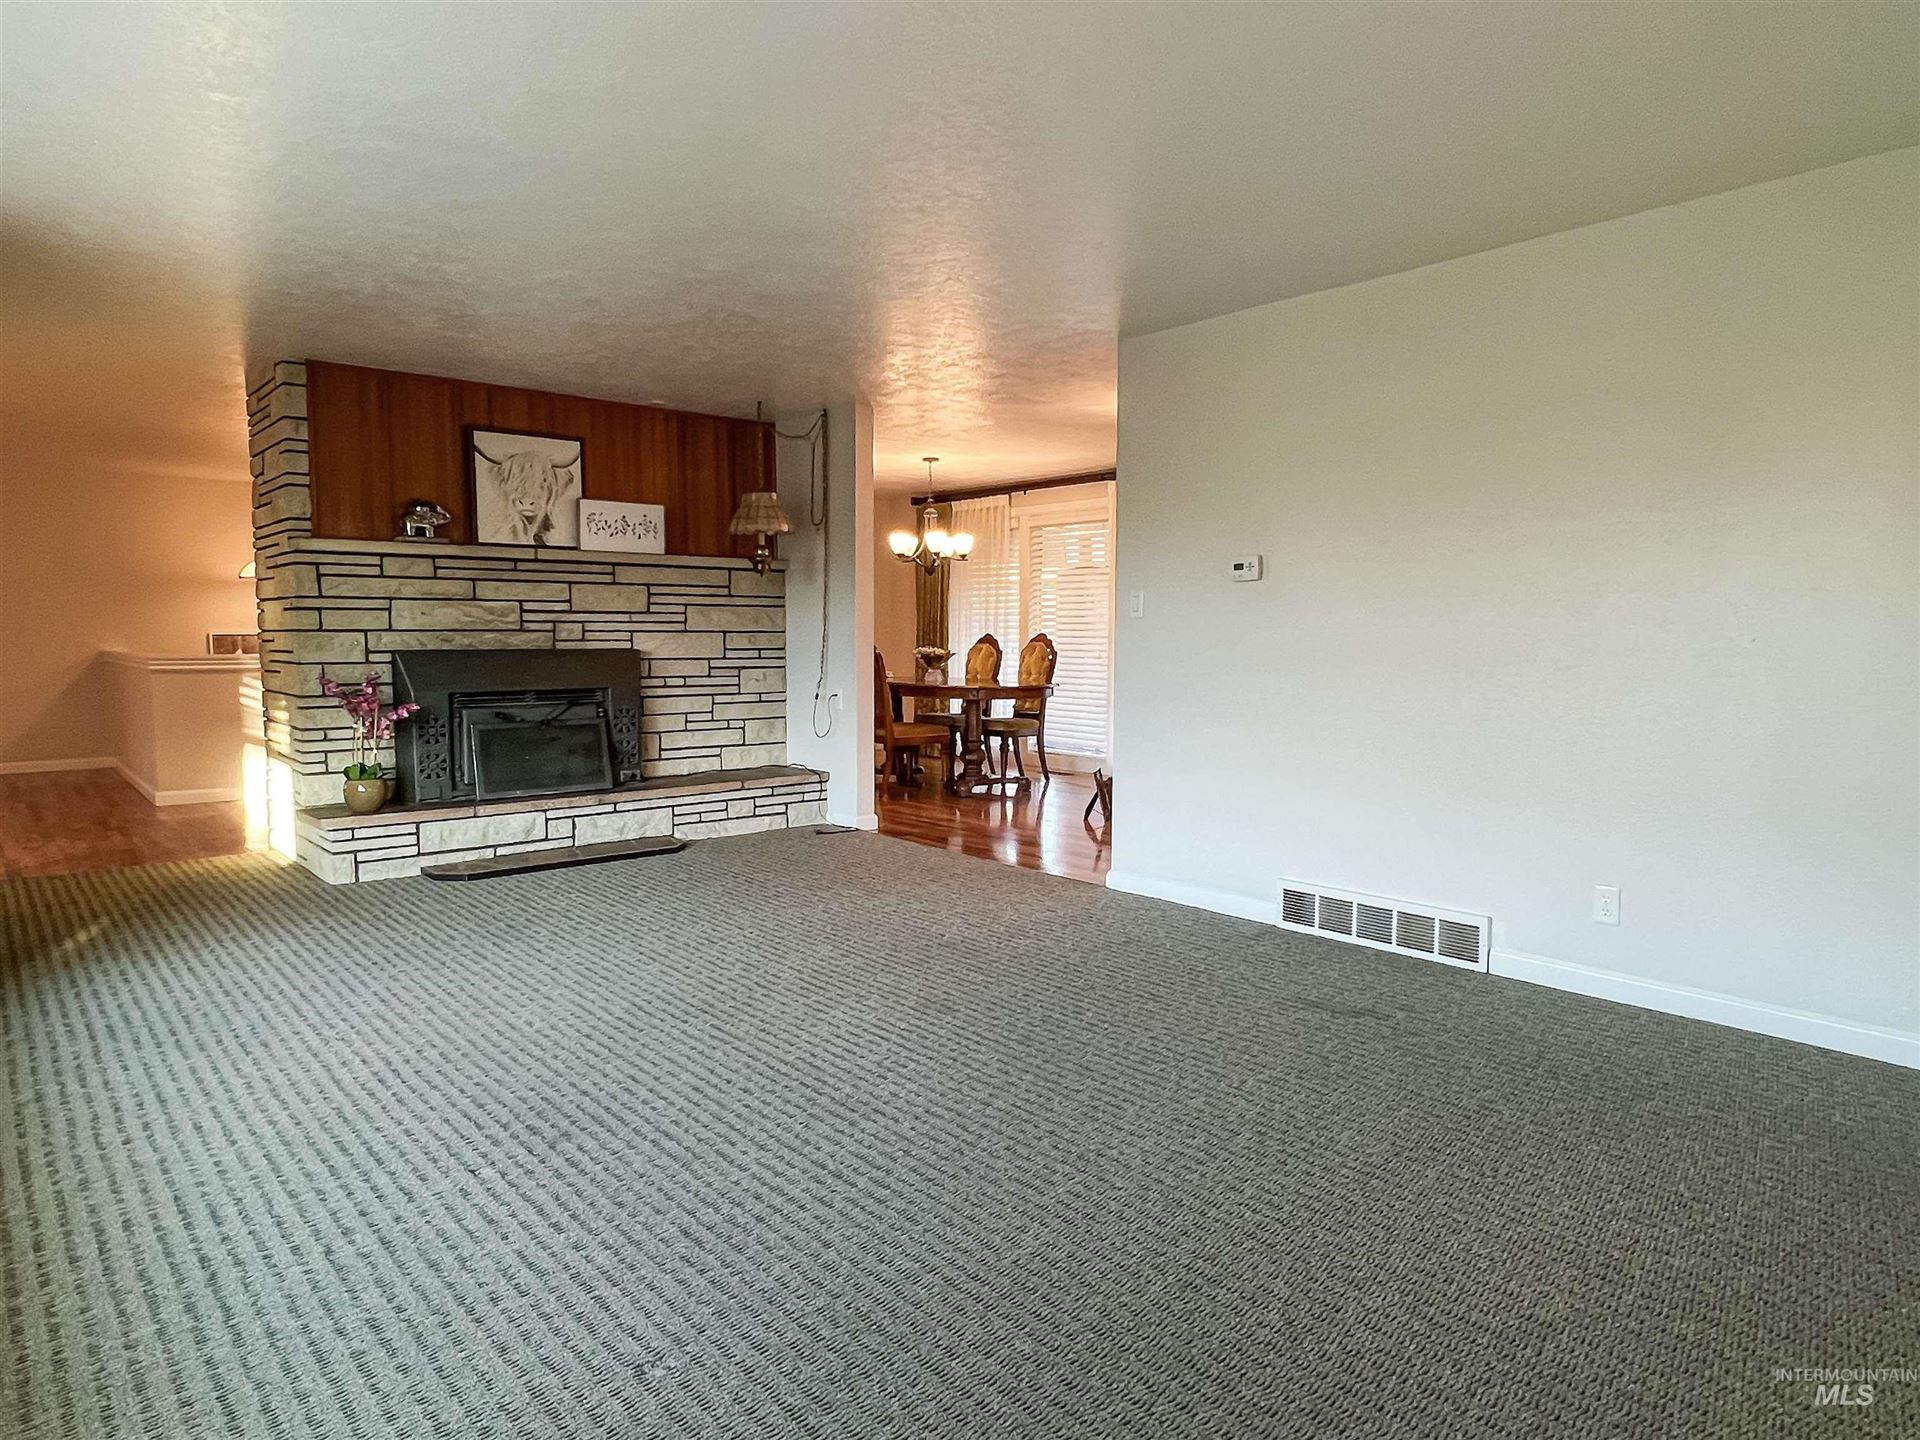 Photo of 11410 W Overland Rd, Boise, ID 83709-2201 (MLS # 98823258)